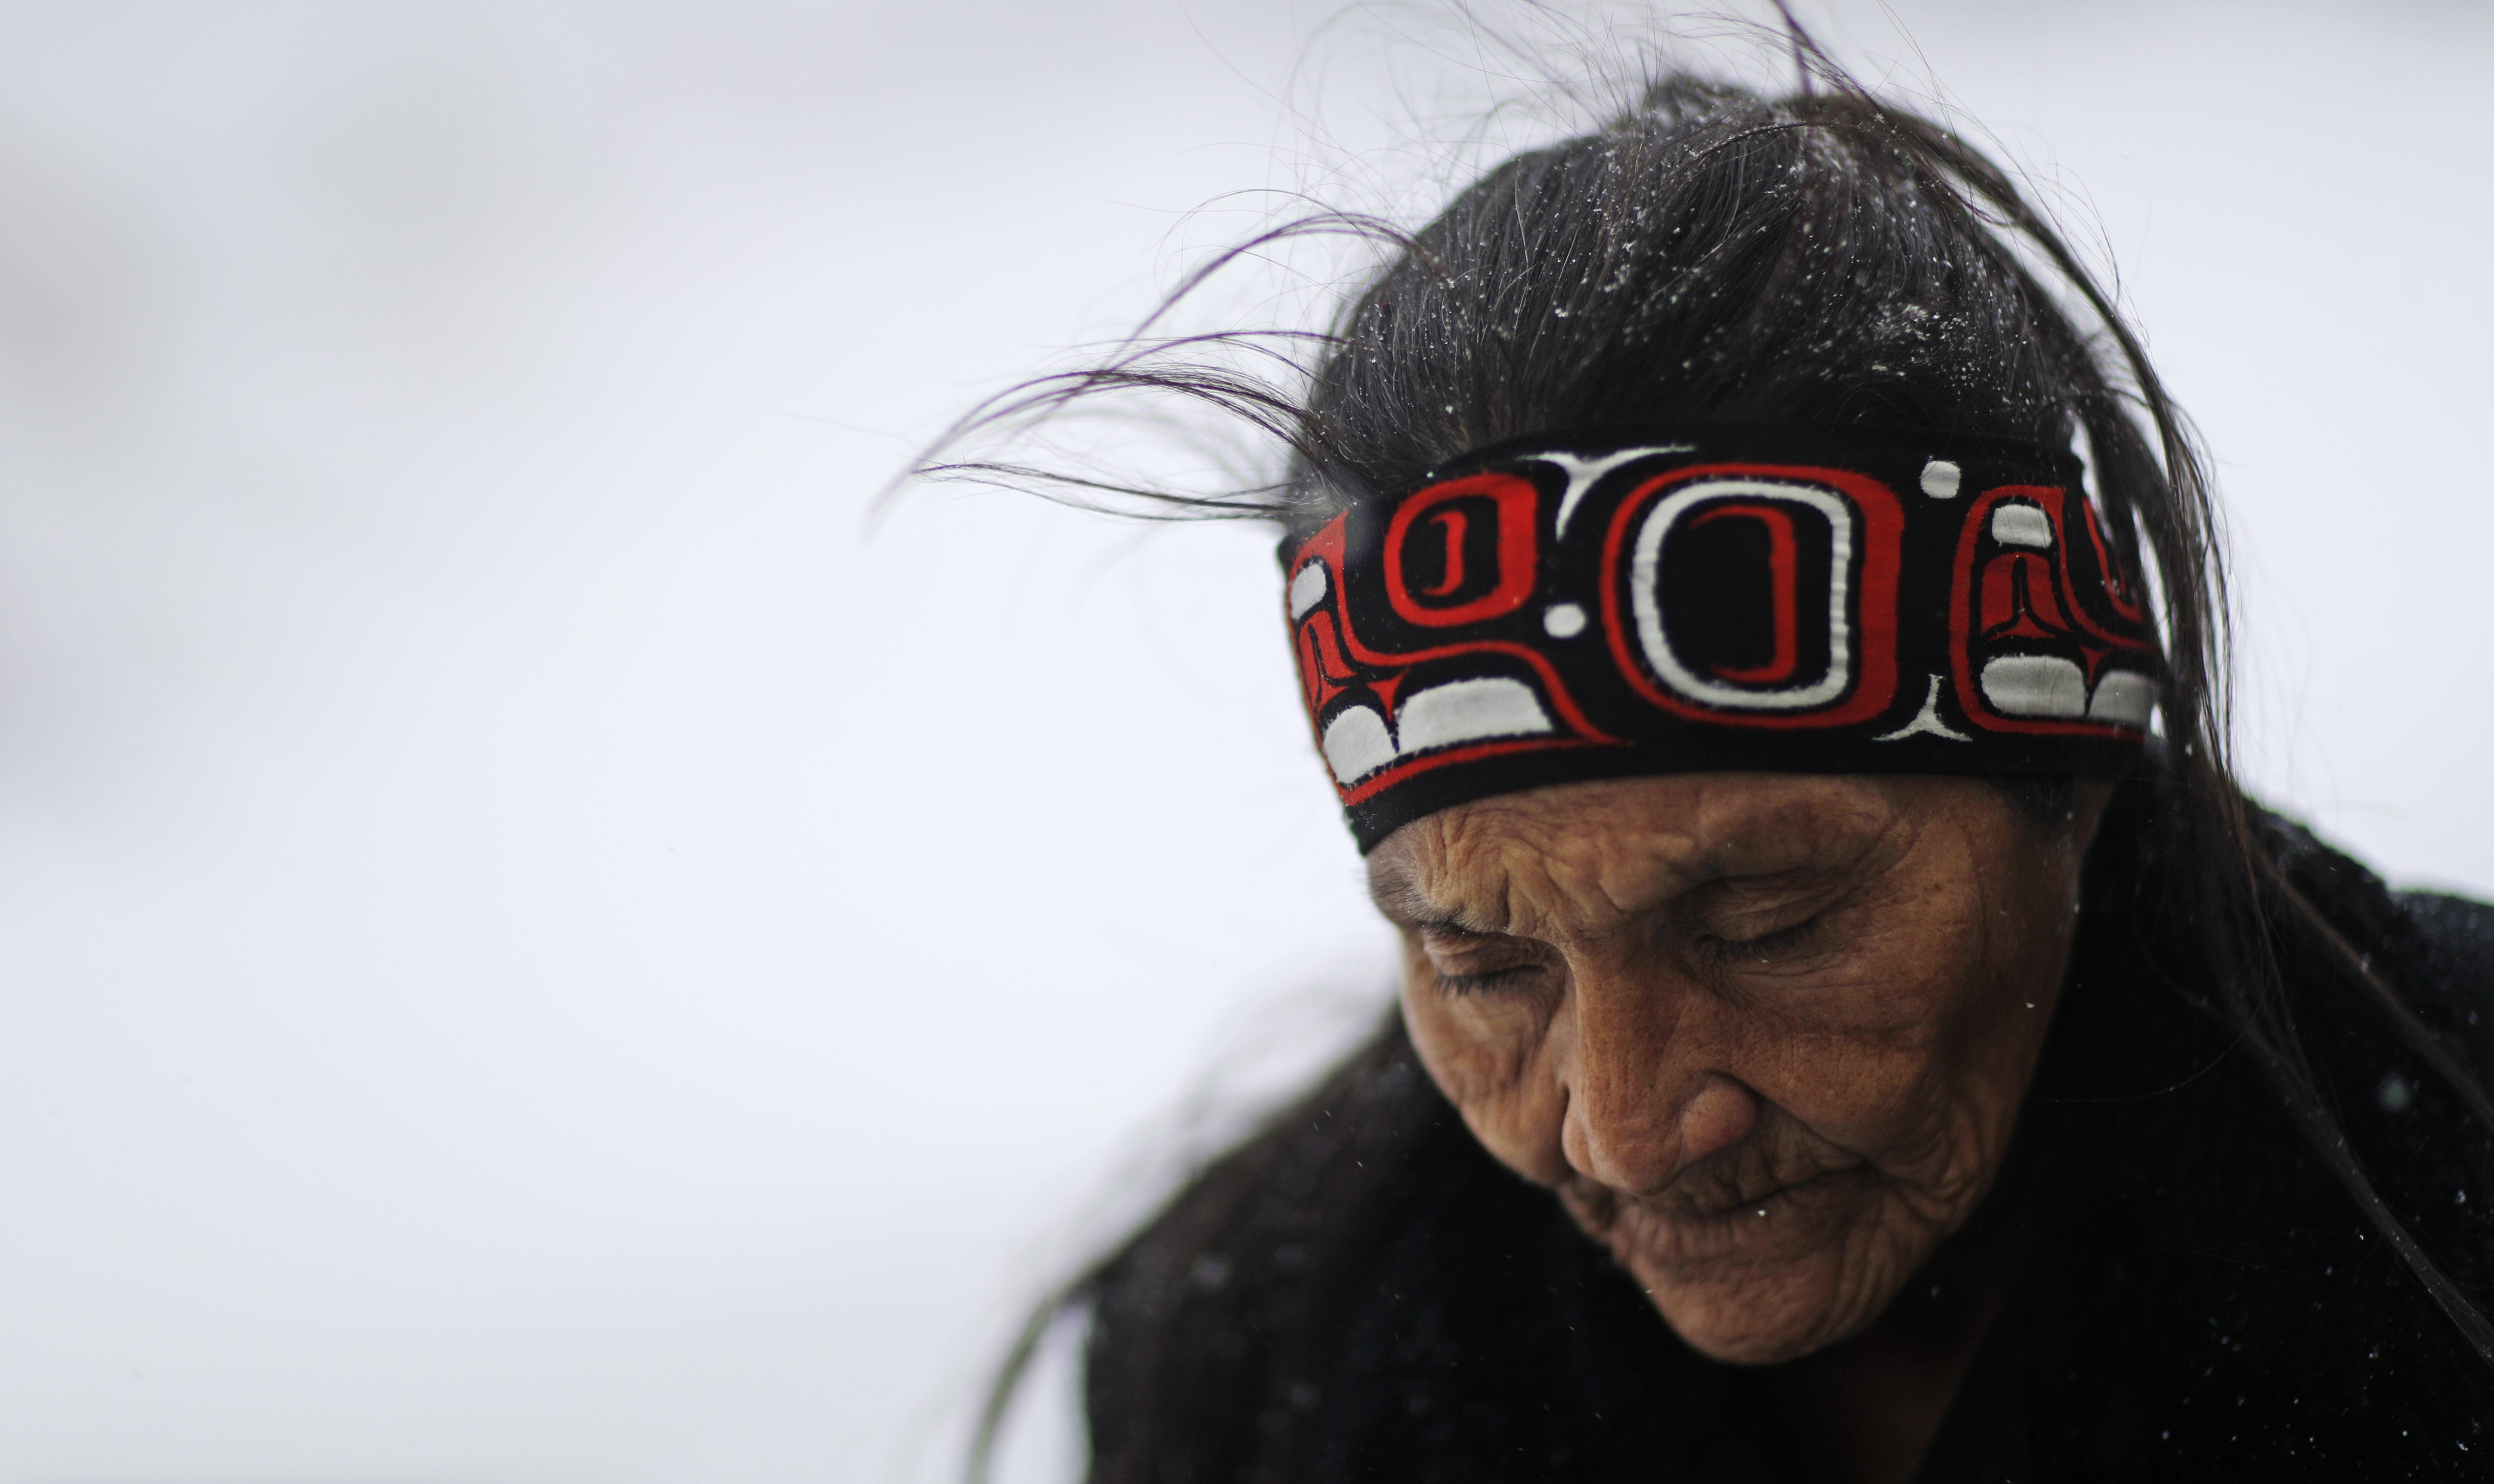 In this Tuesday, Nov. 29, 2016 photo, Grandma Redfeather of the Sioux Native American tribe walks in the snow to get water at the Oceti Sakowin camp where people have gathered to protest the Dakota Access oil pipeline in Cannon Ball, N.D.